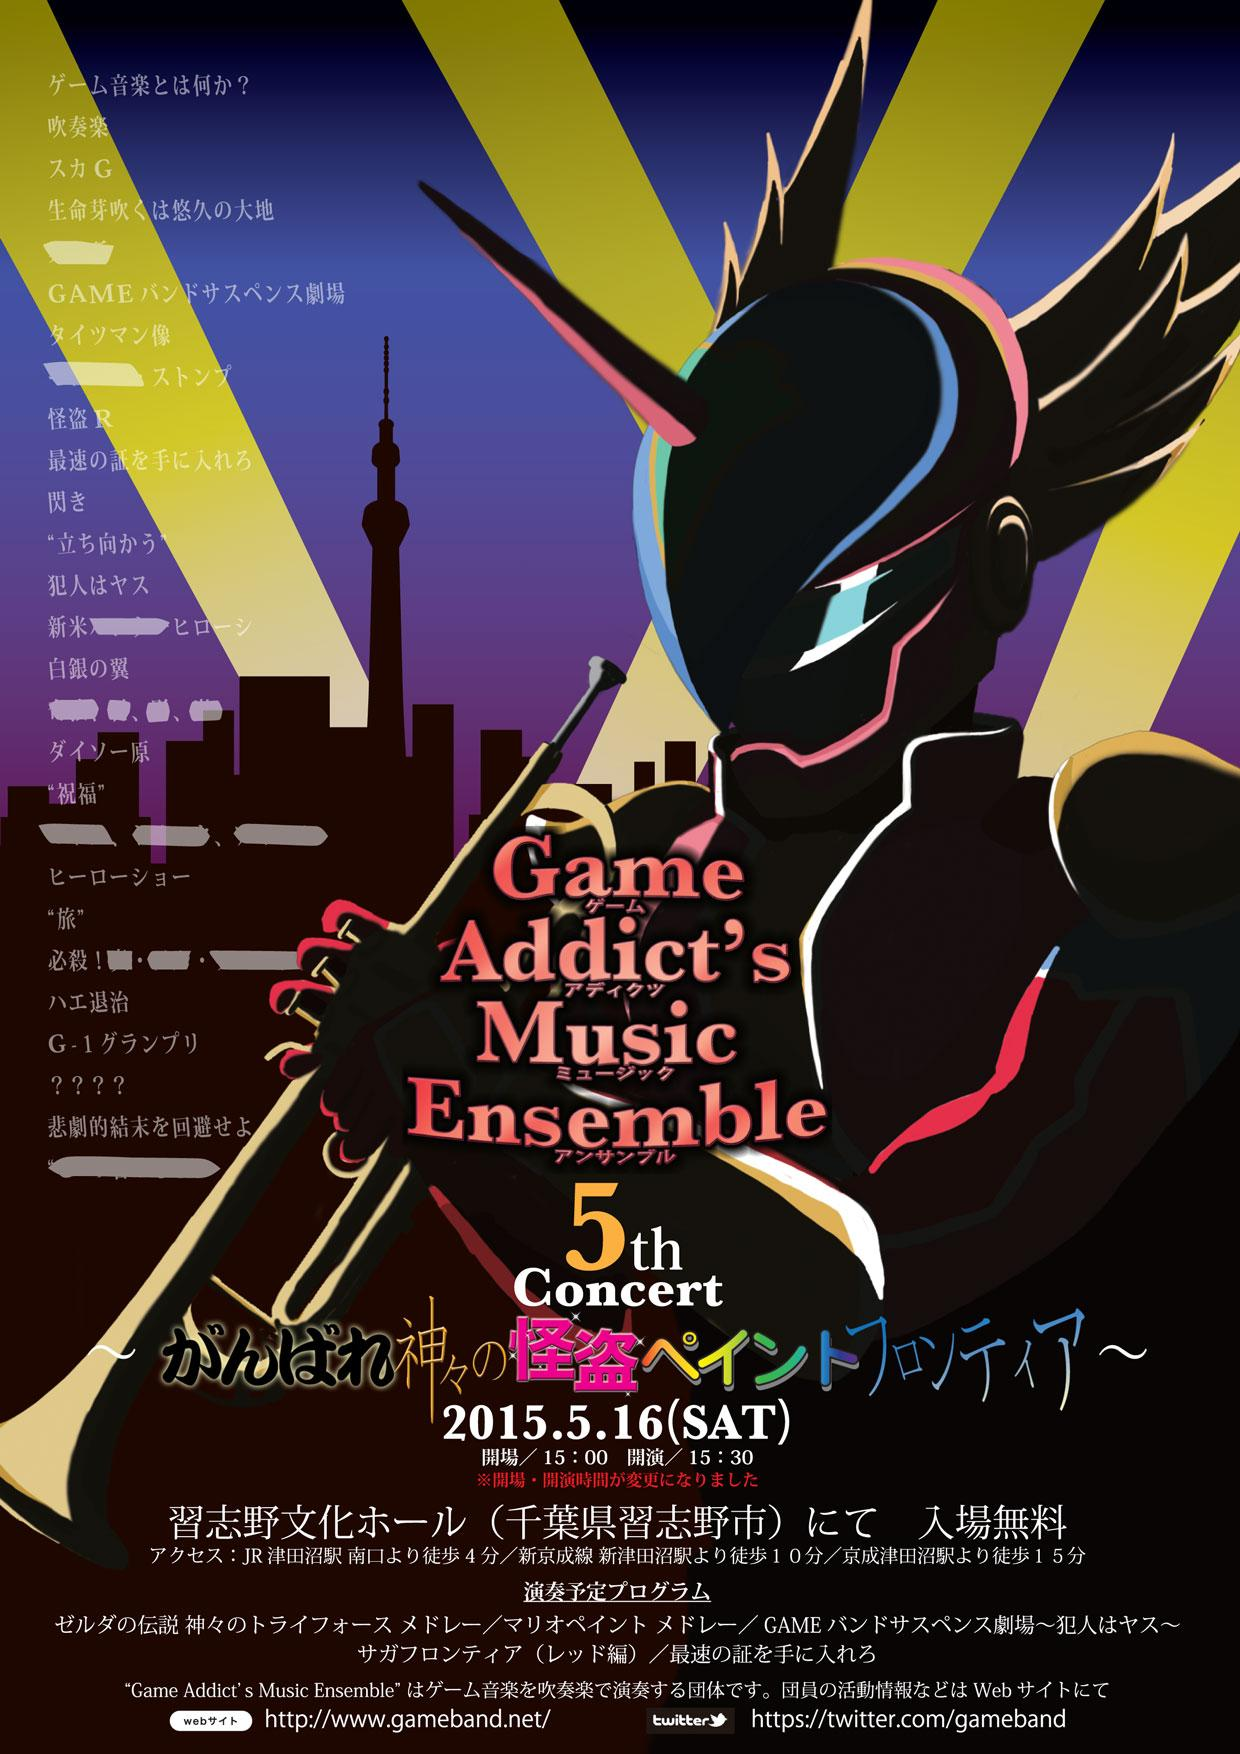 Game Addict's Music Emsemble 5th Concert~がんばれ神々の怪盗ペイントフロンティア~